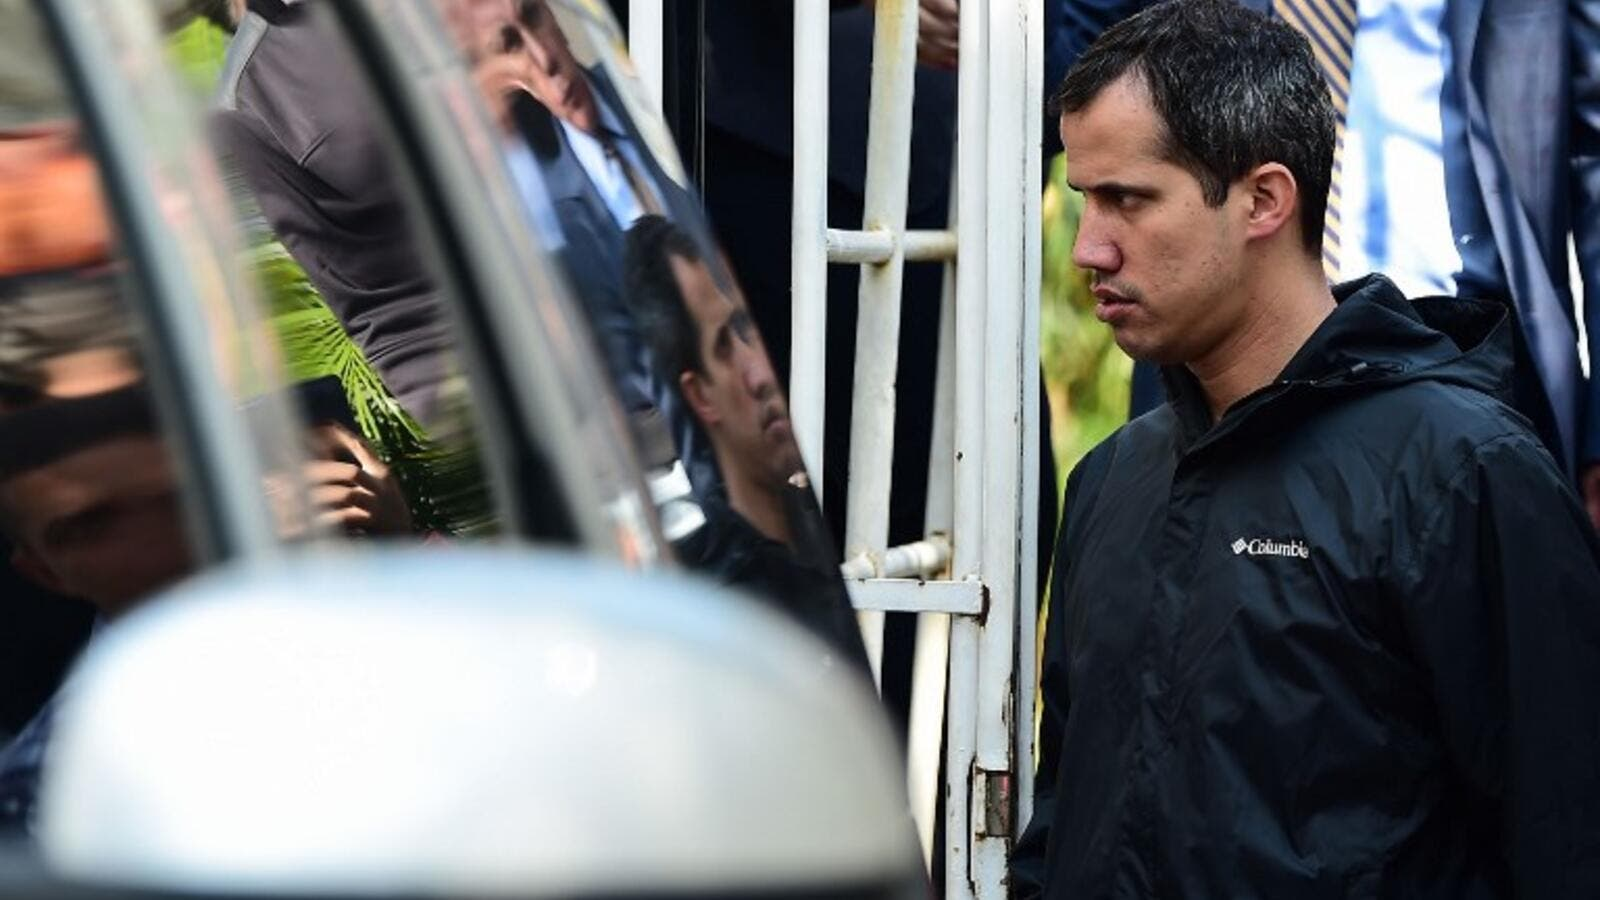 Venezuelan opposition leader and self-proclaimed interim president Juan Guaido leaves the residence of his Chief of Staff Roberto Marrero, who was arrested during a raid early March 21, 2019. (AFP)